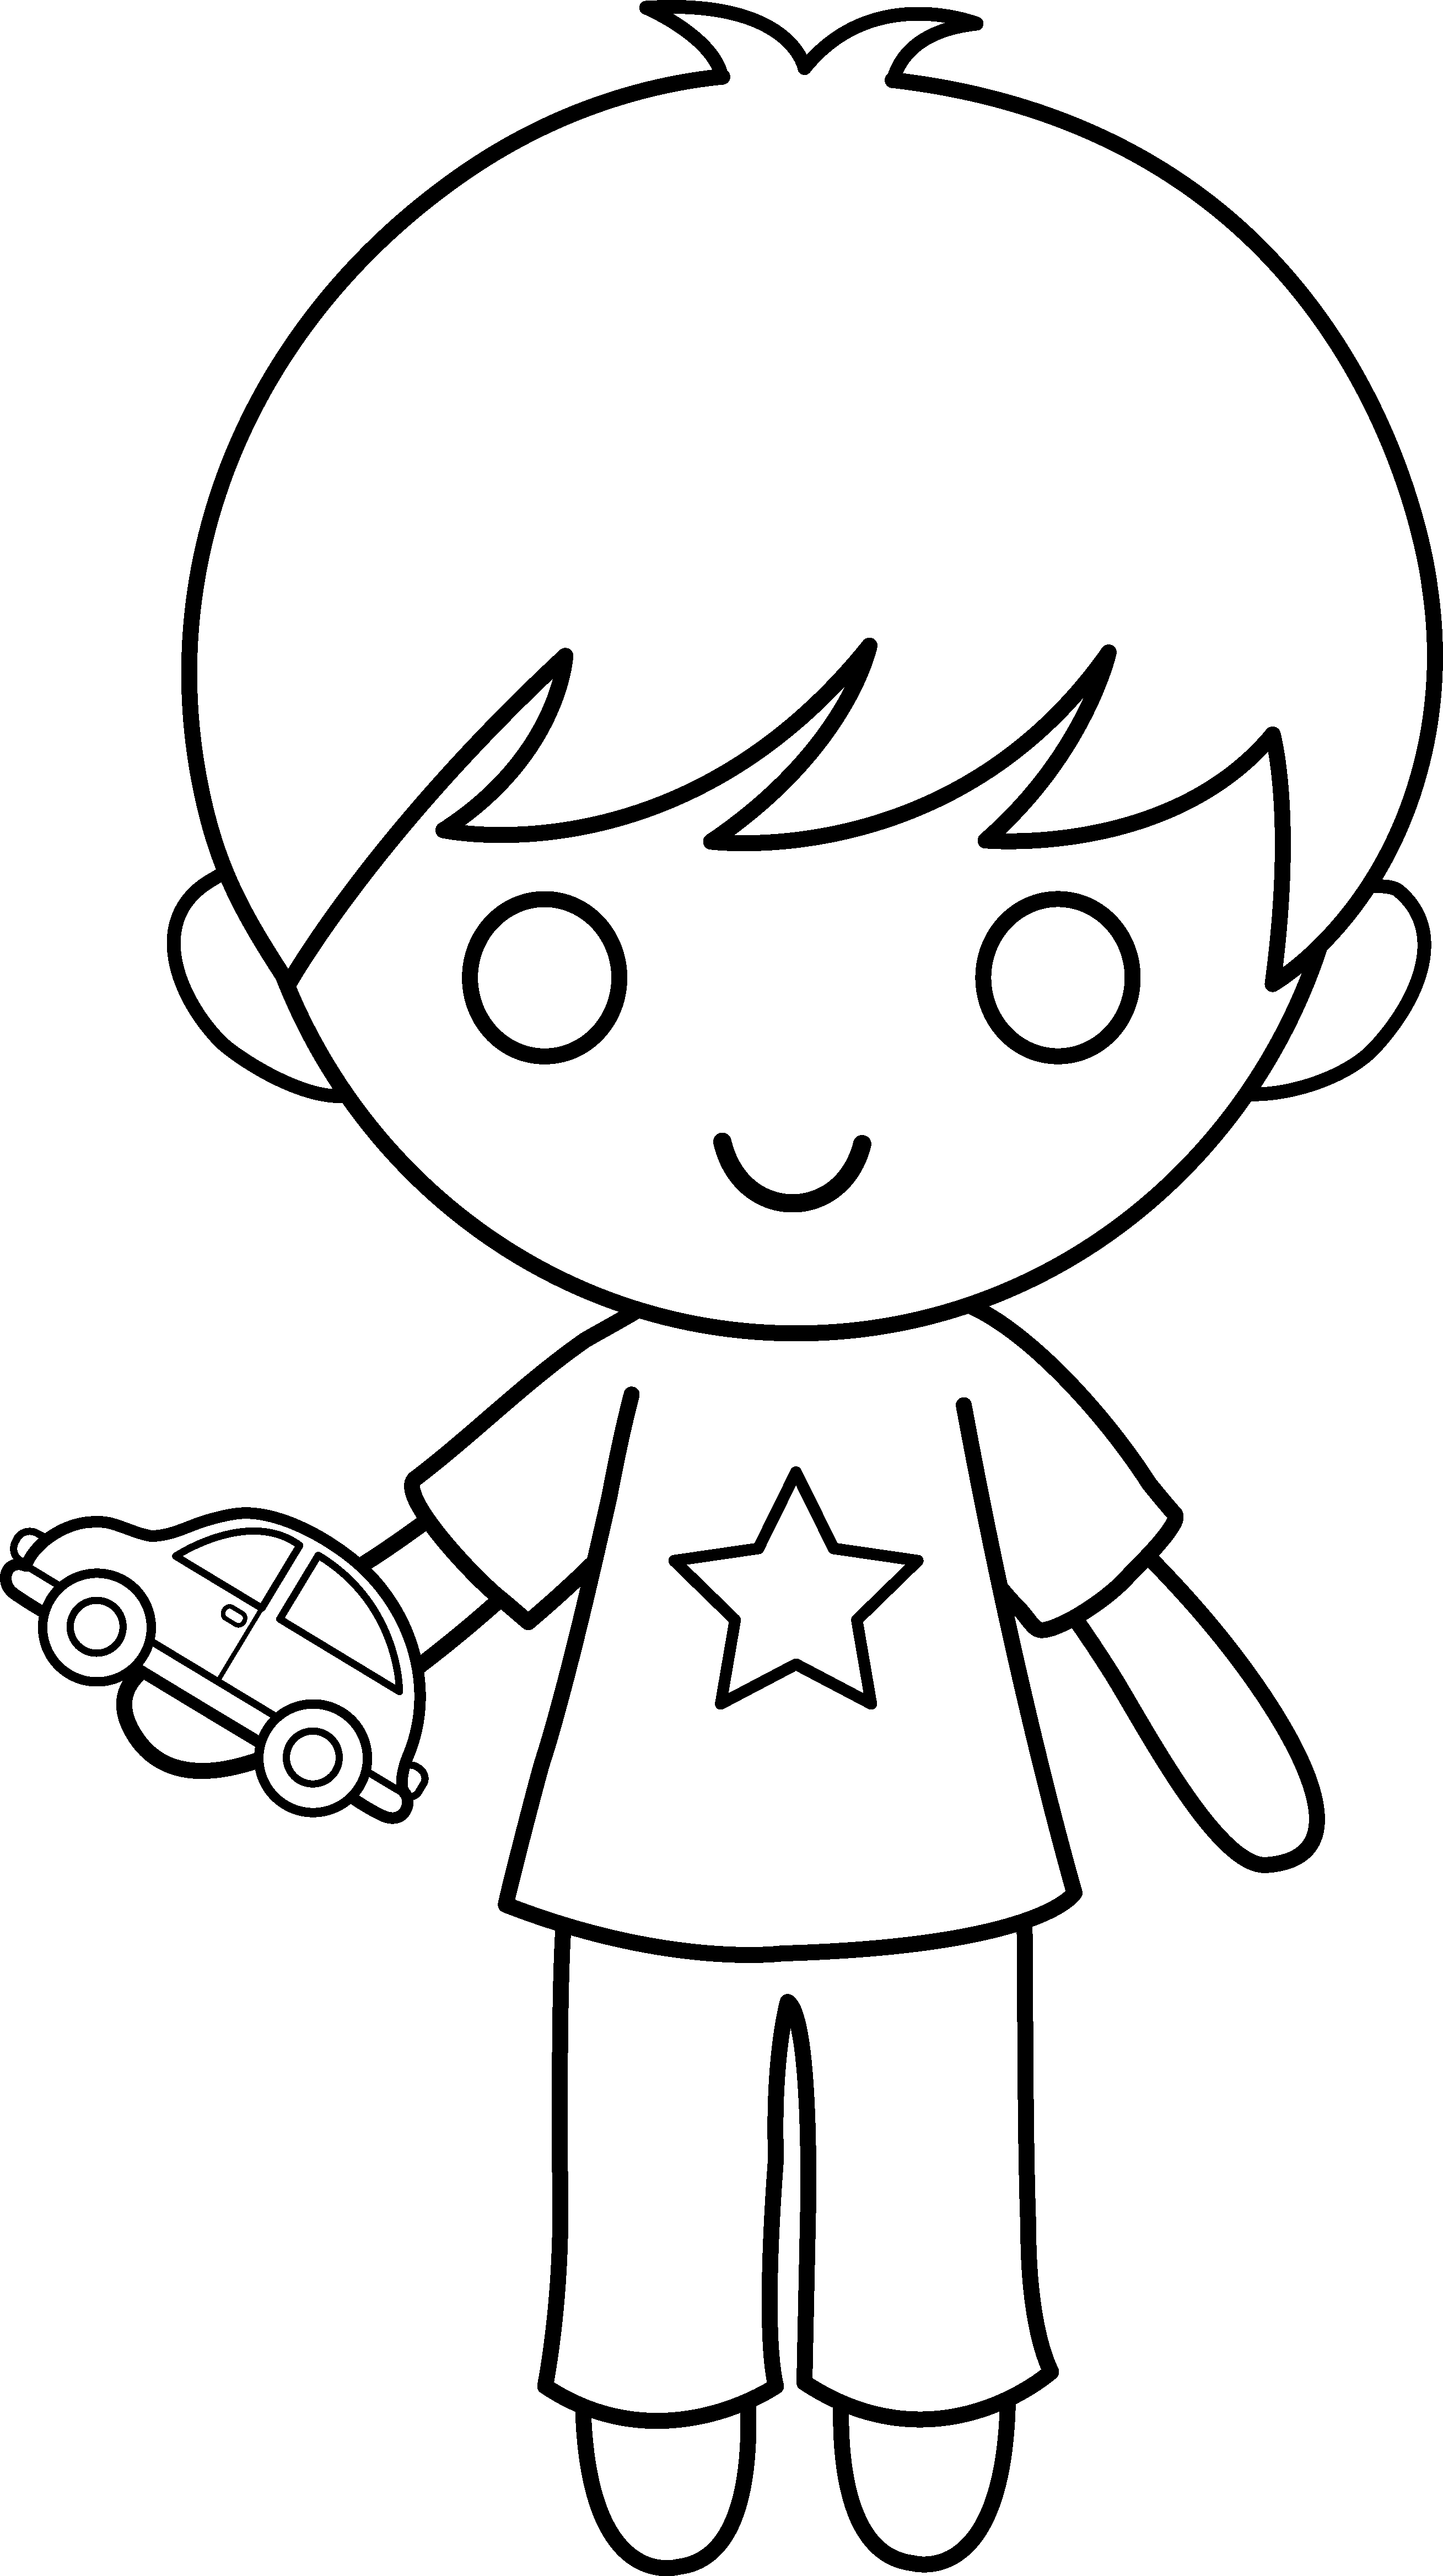 Boy car clipart vector black and white stock Boy With Toy Car Coloring Page - Free Clip Art vector black and white stock